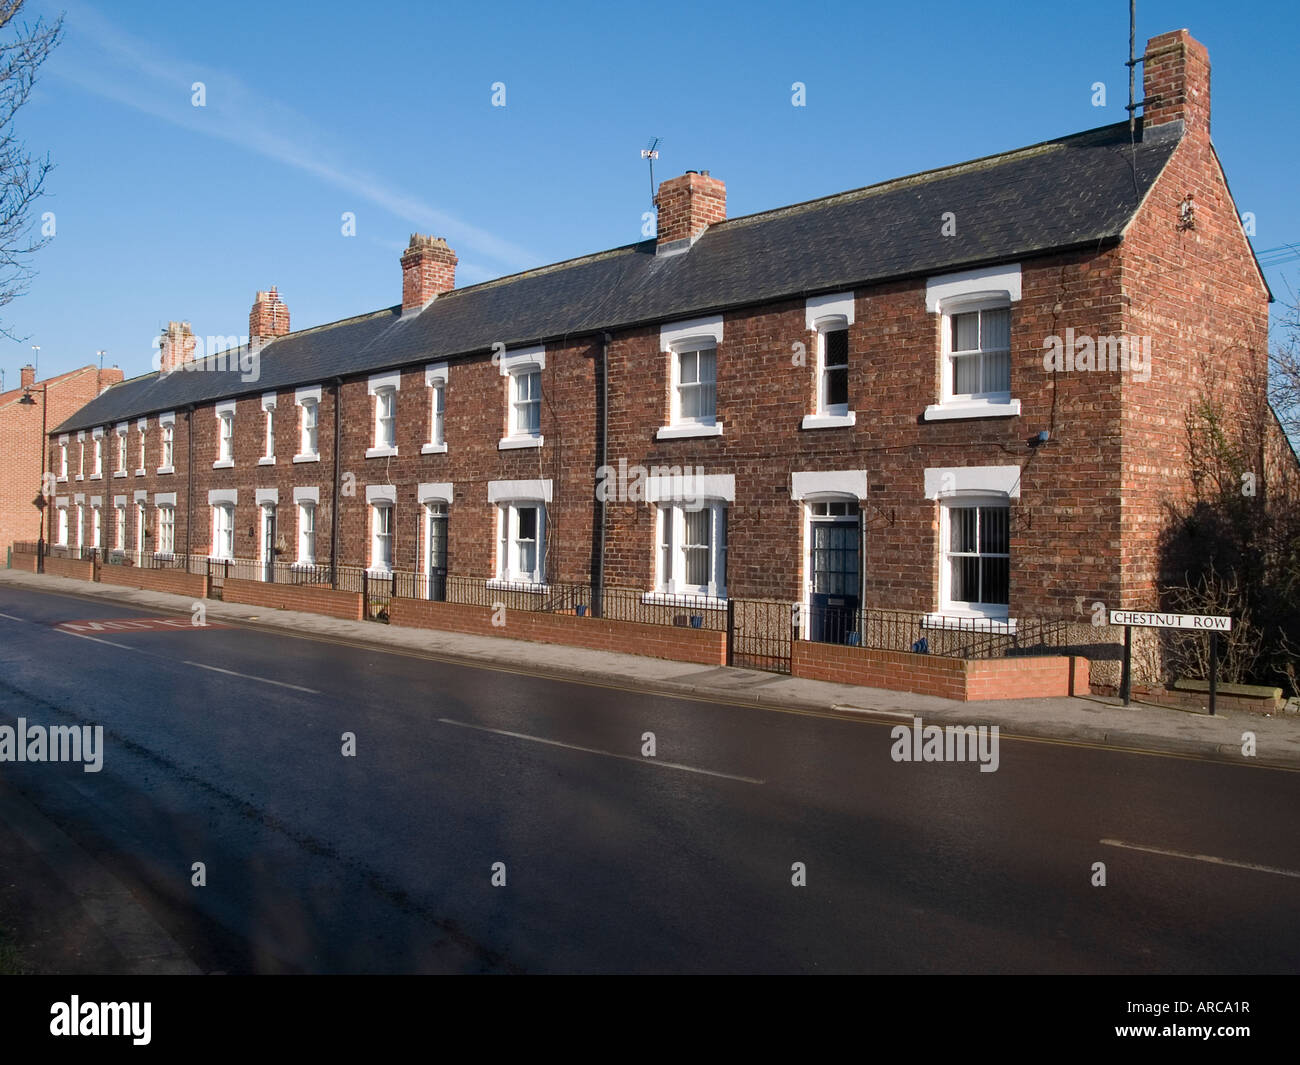 Chestnut Row a row of substantial well built double fronted terraced houses in Greatham Co Durham - Stock Image